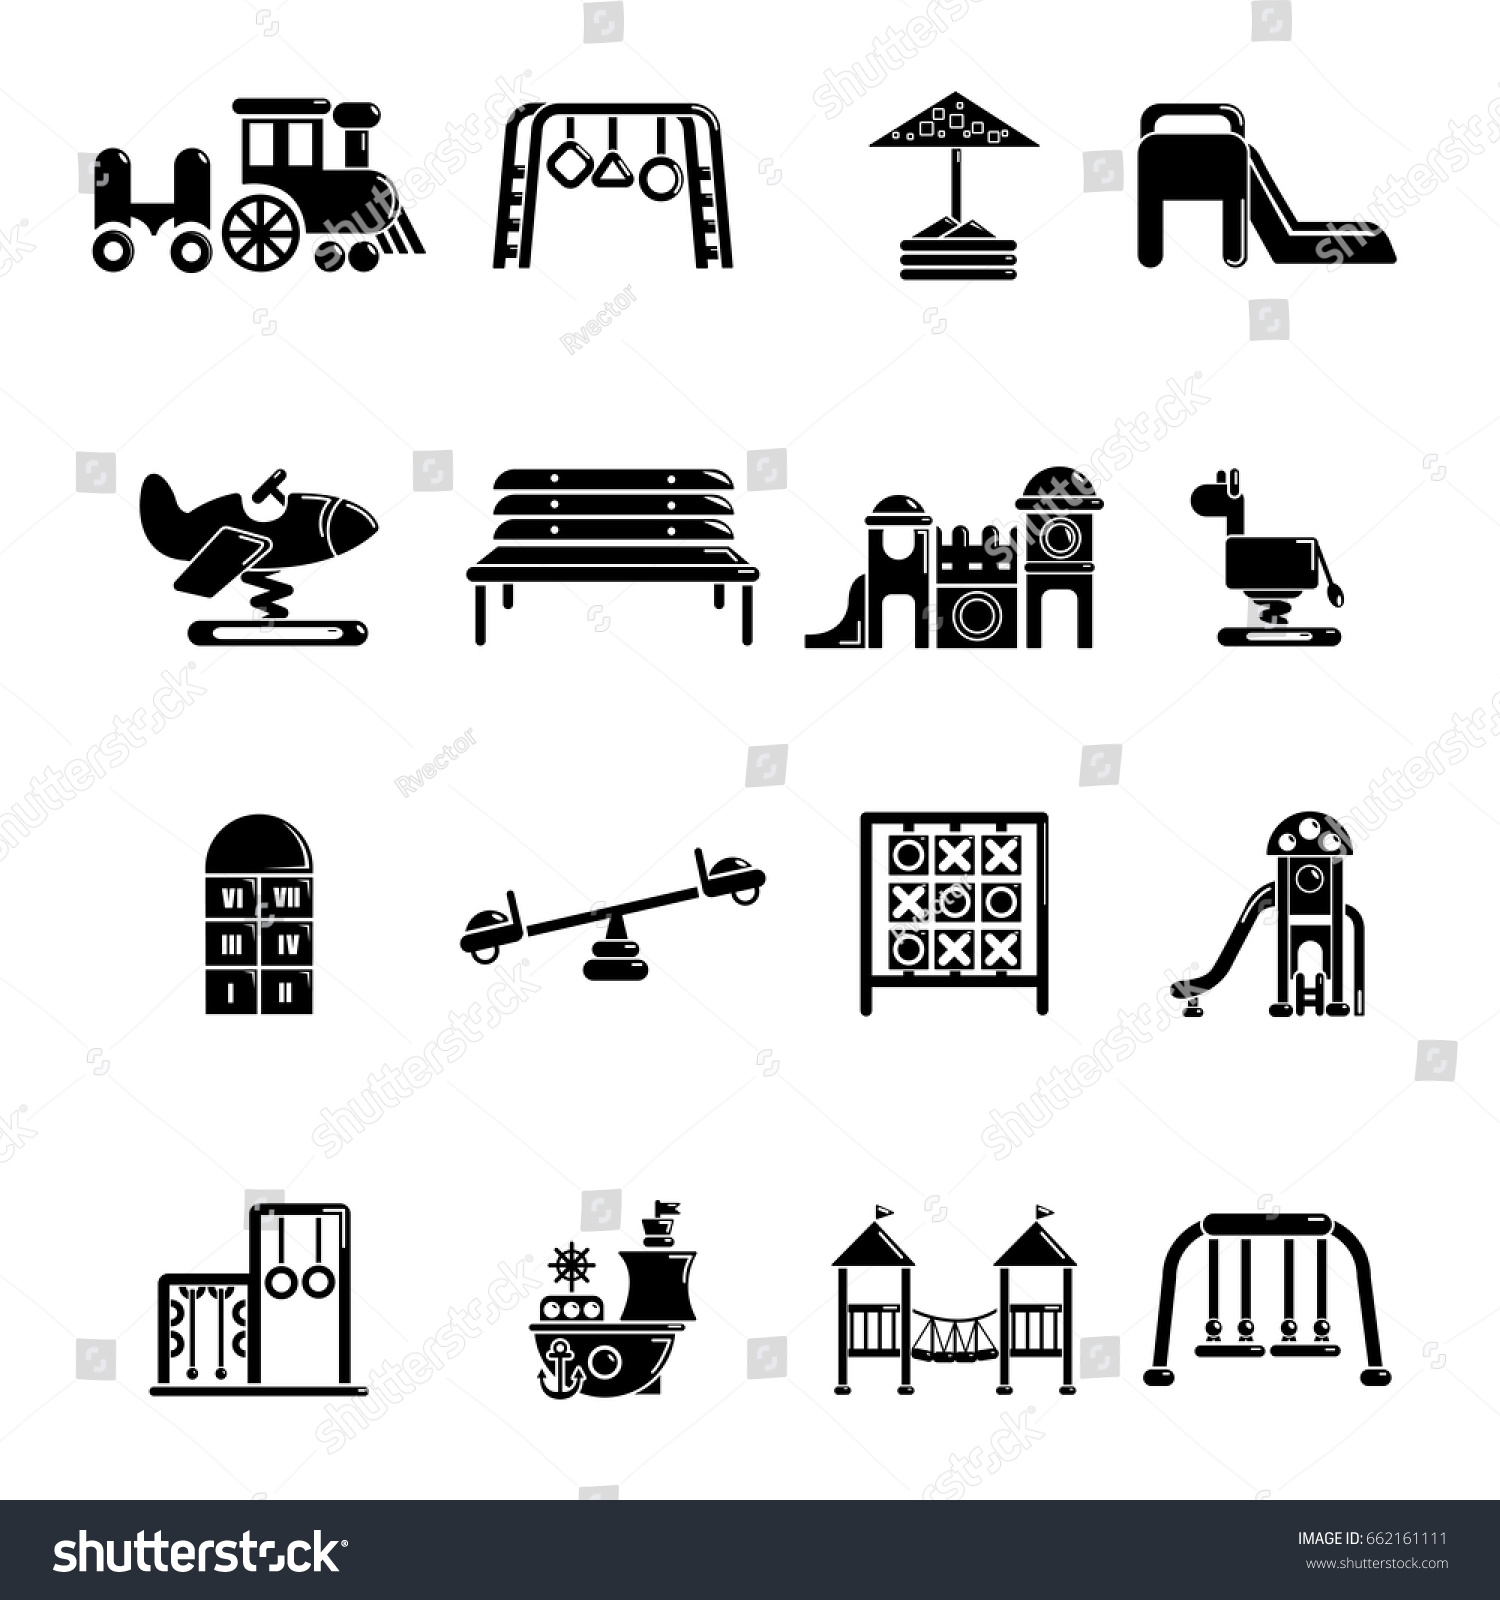 Picture Password Tic Tac Toe Electronic Circuit Symbols Stock Vector Illustration 1445110